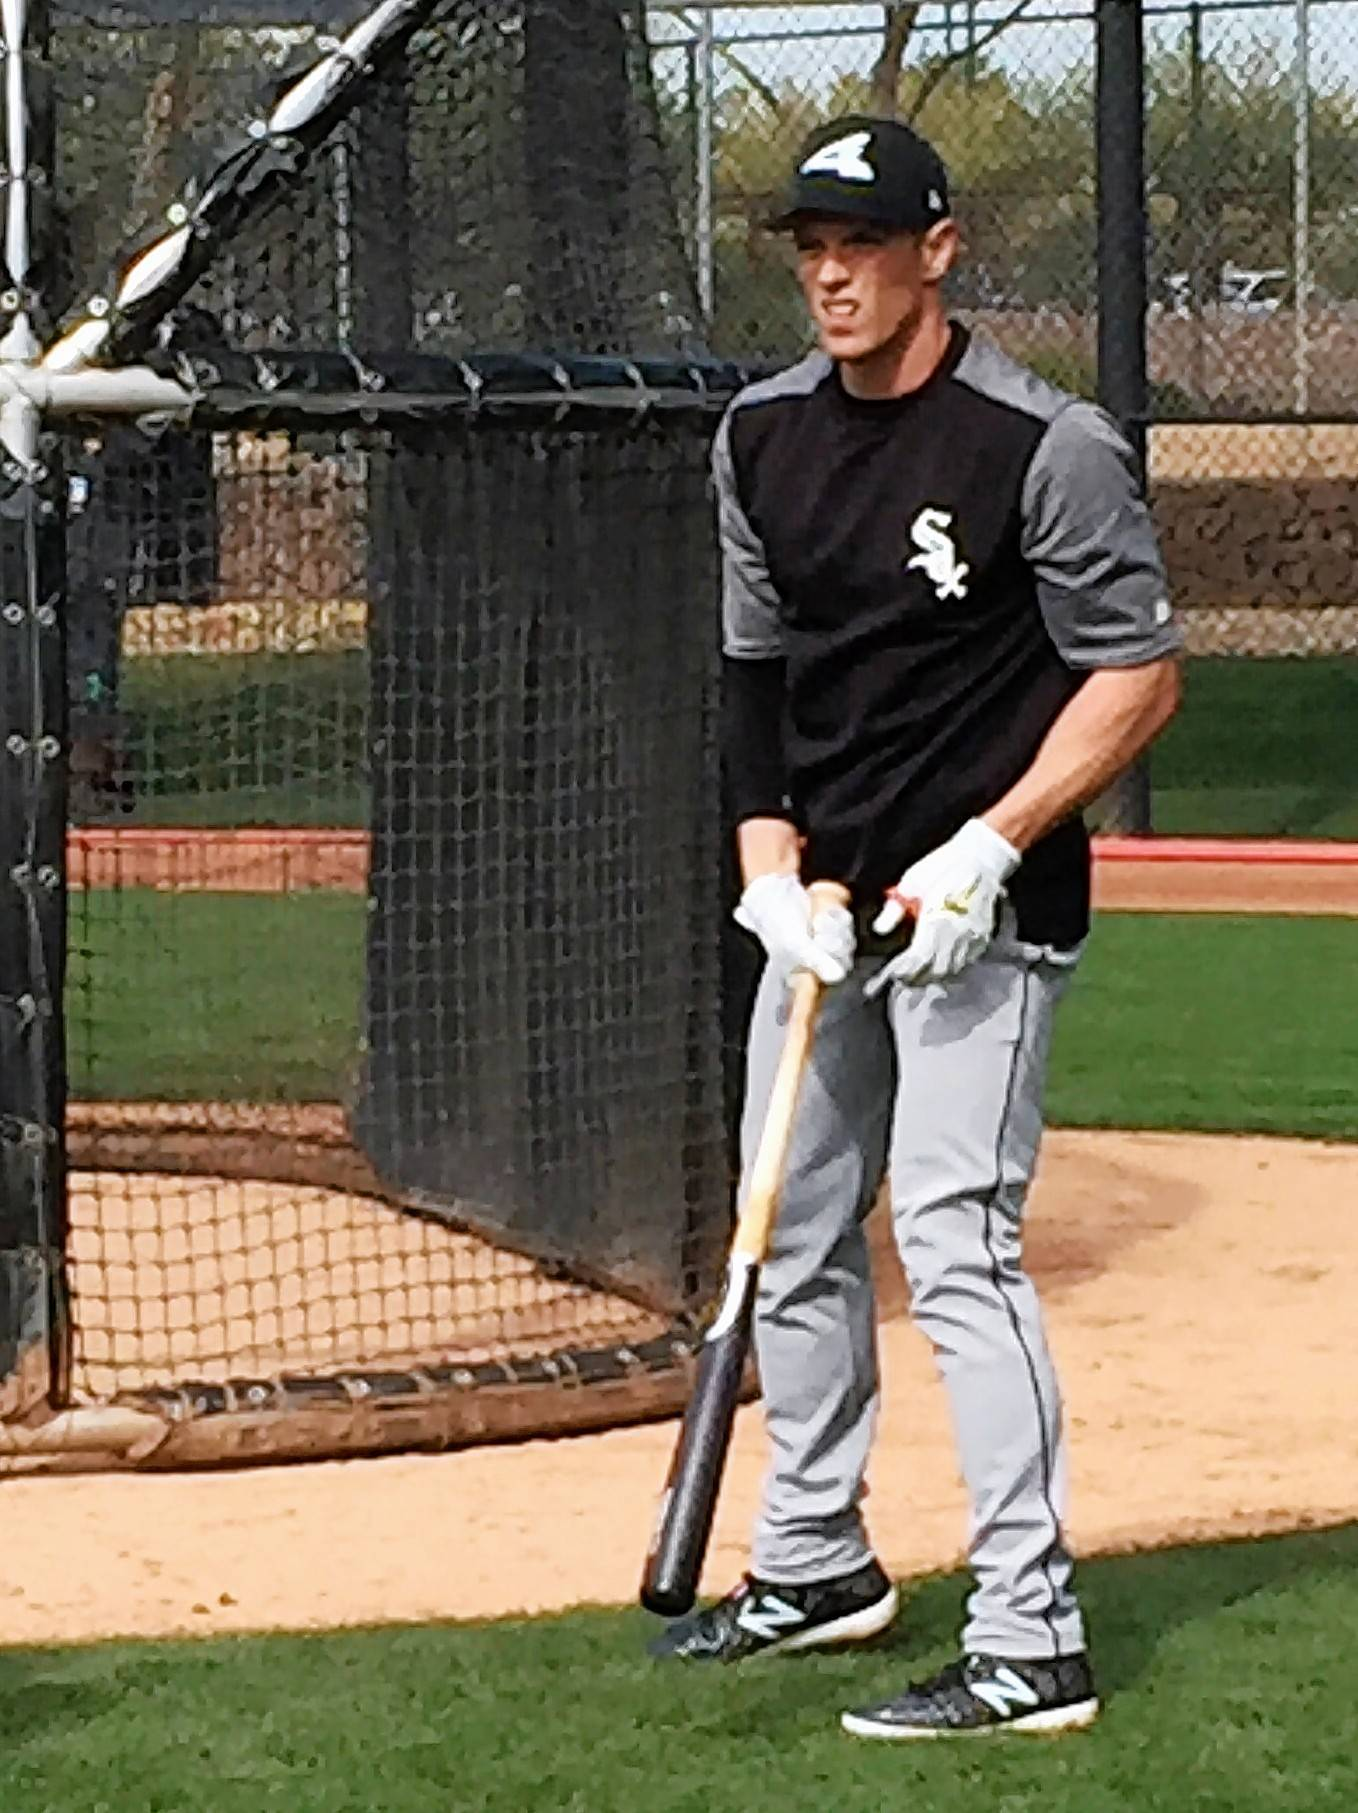 SCOT GREGOR/sgregor@dailyherald.com Charlie Tilson of the Chicago White Sox gets ready for some batting practice Saturday at Camelback Ranch in Glendale, Ariz., the spring-training home of the White Sox.